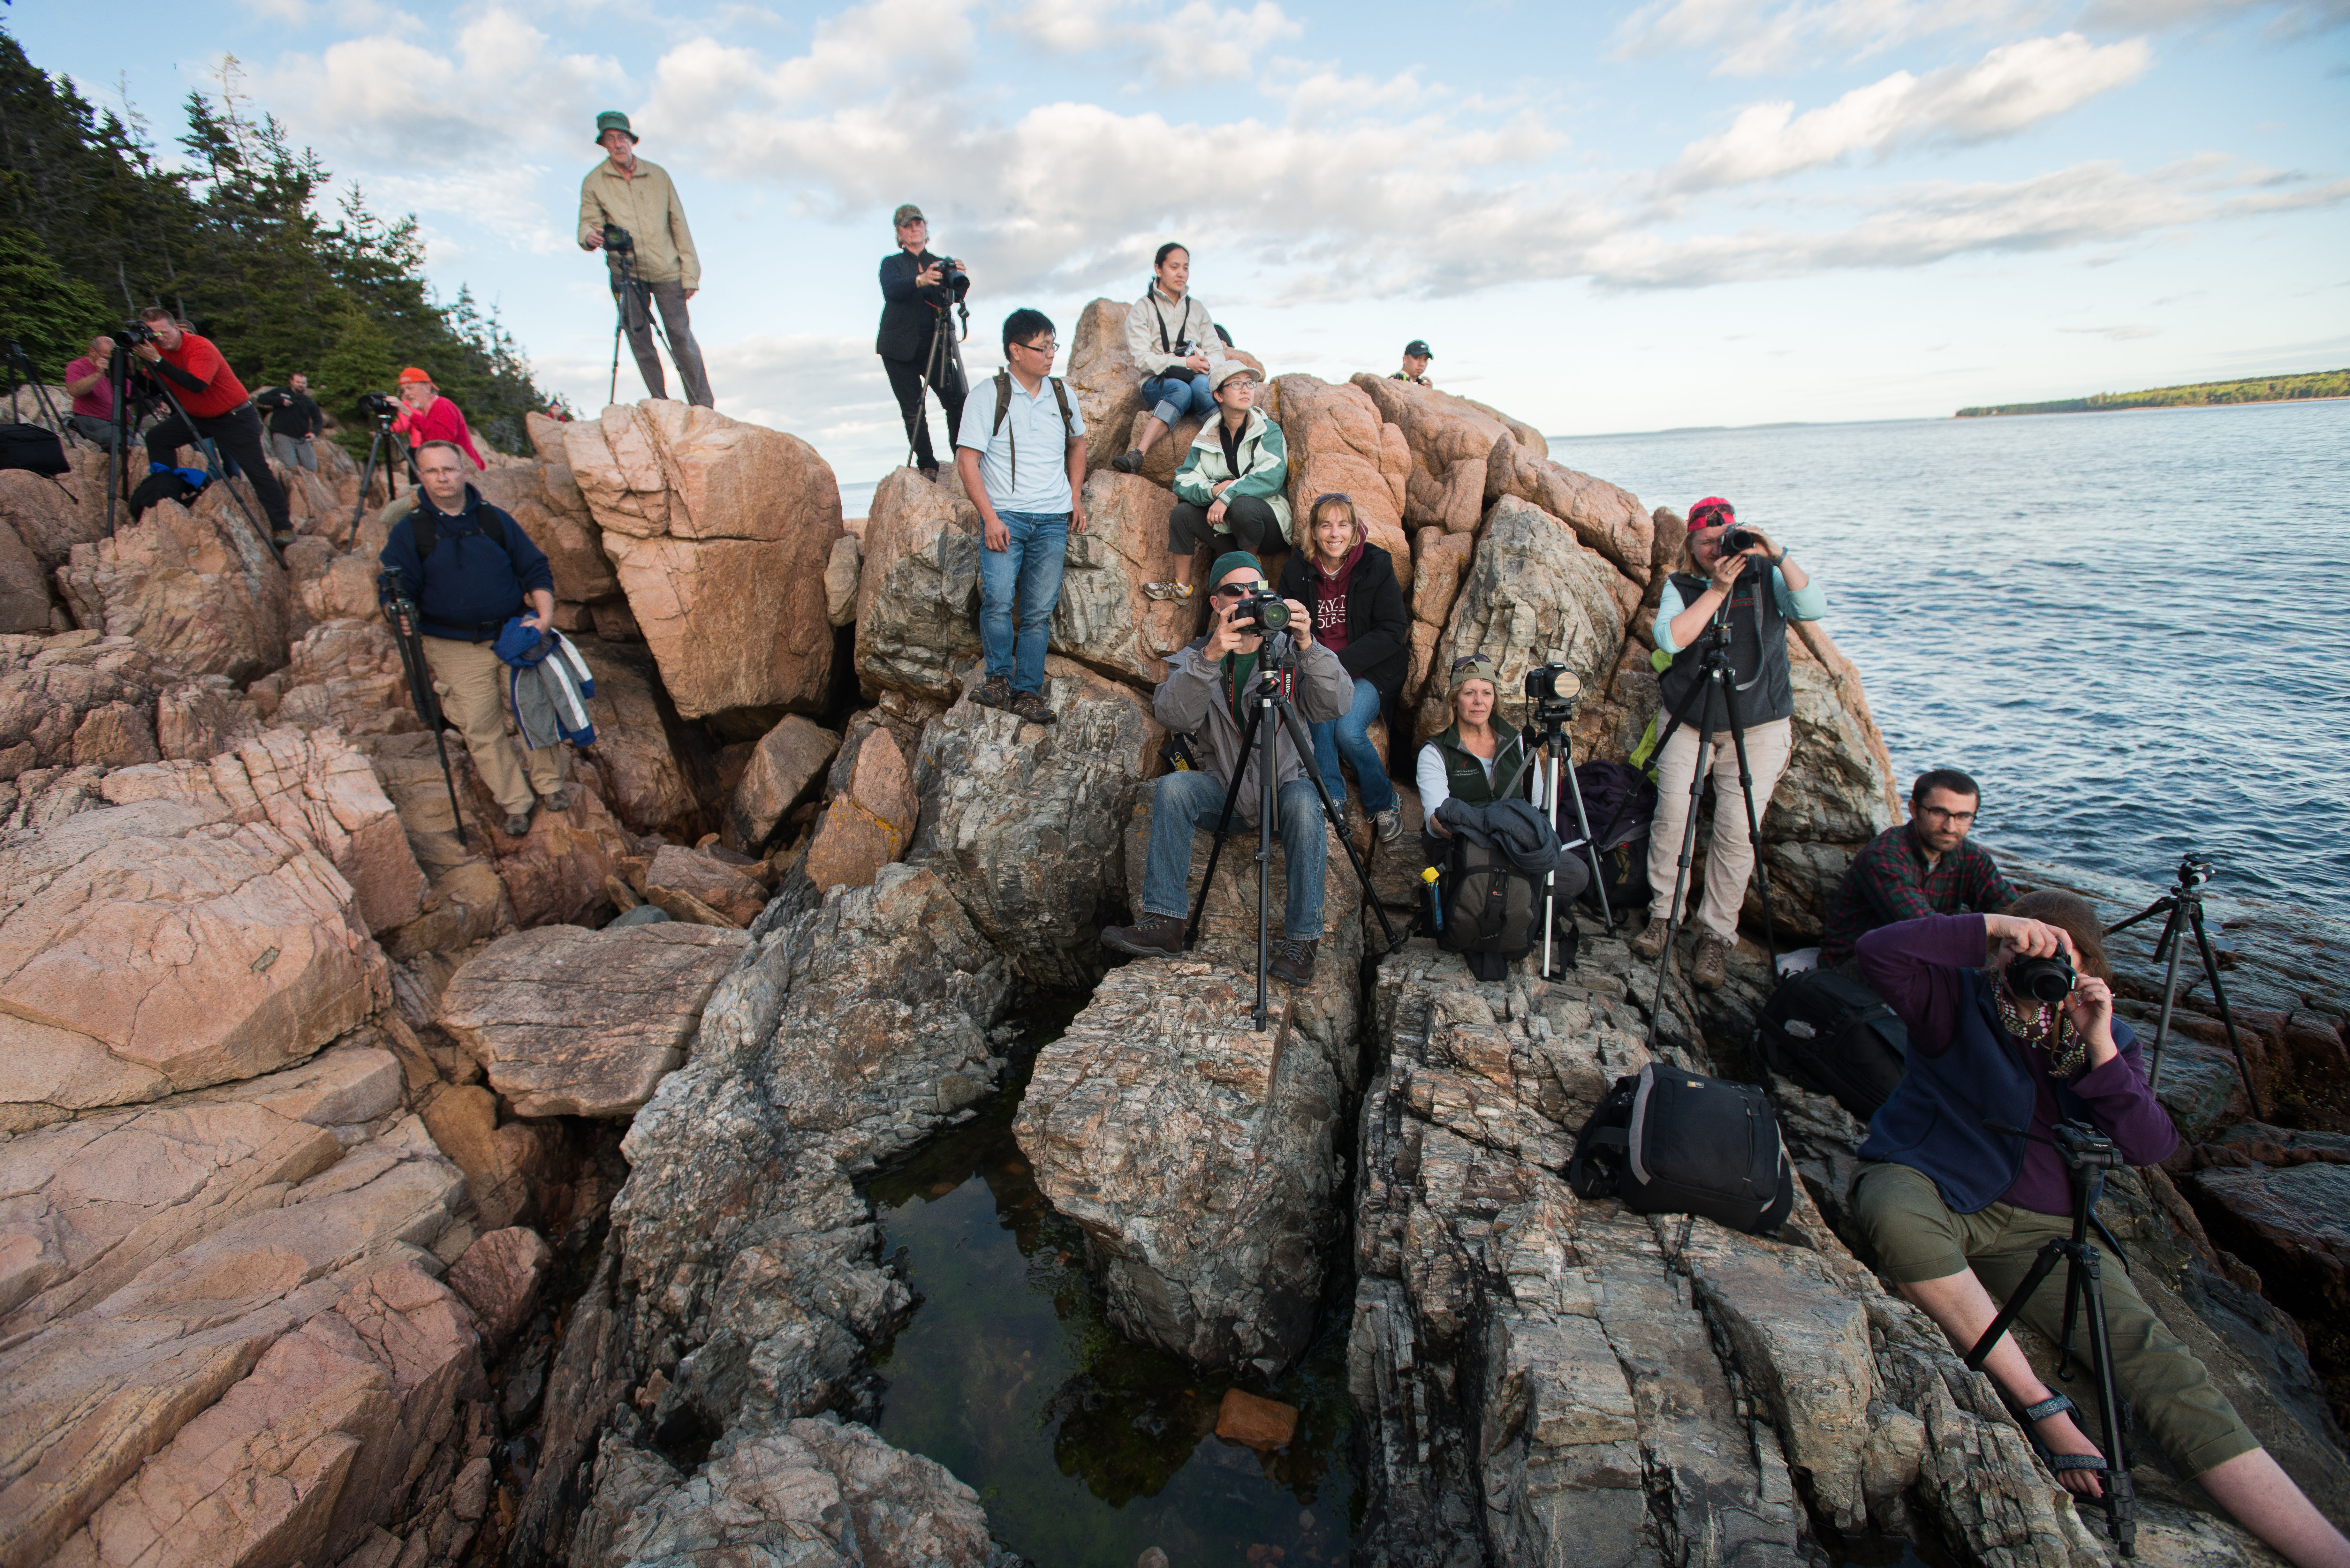 Dozens of photographers position themselves along a rocky shoreline